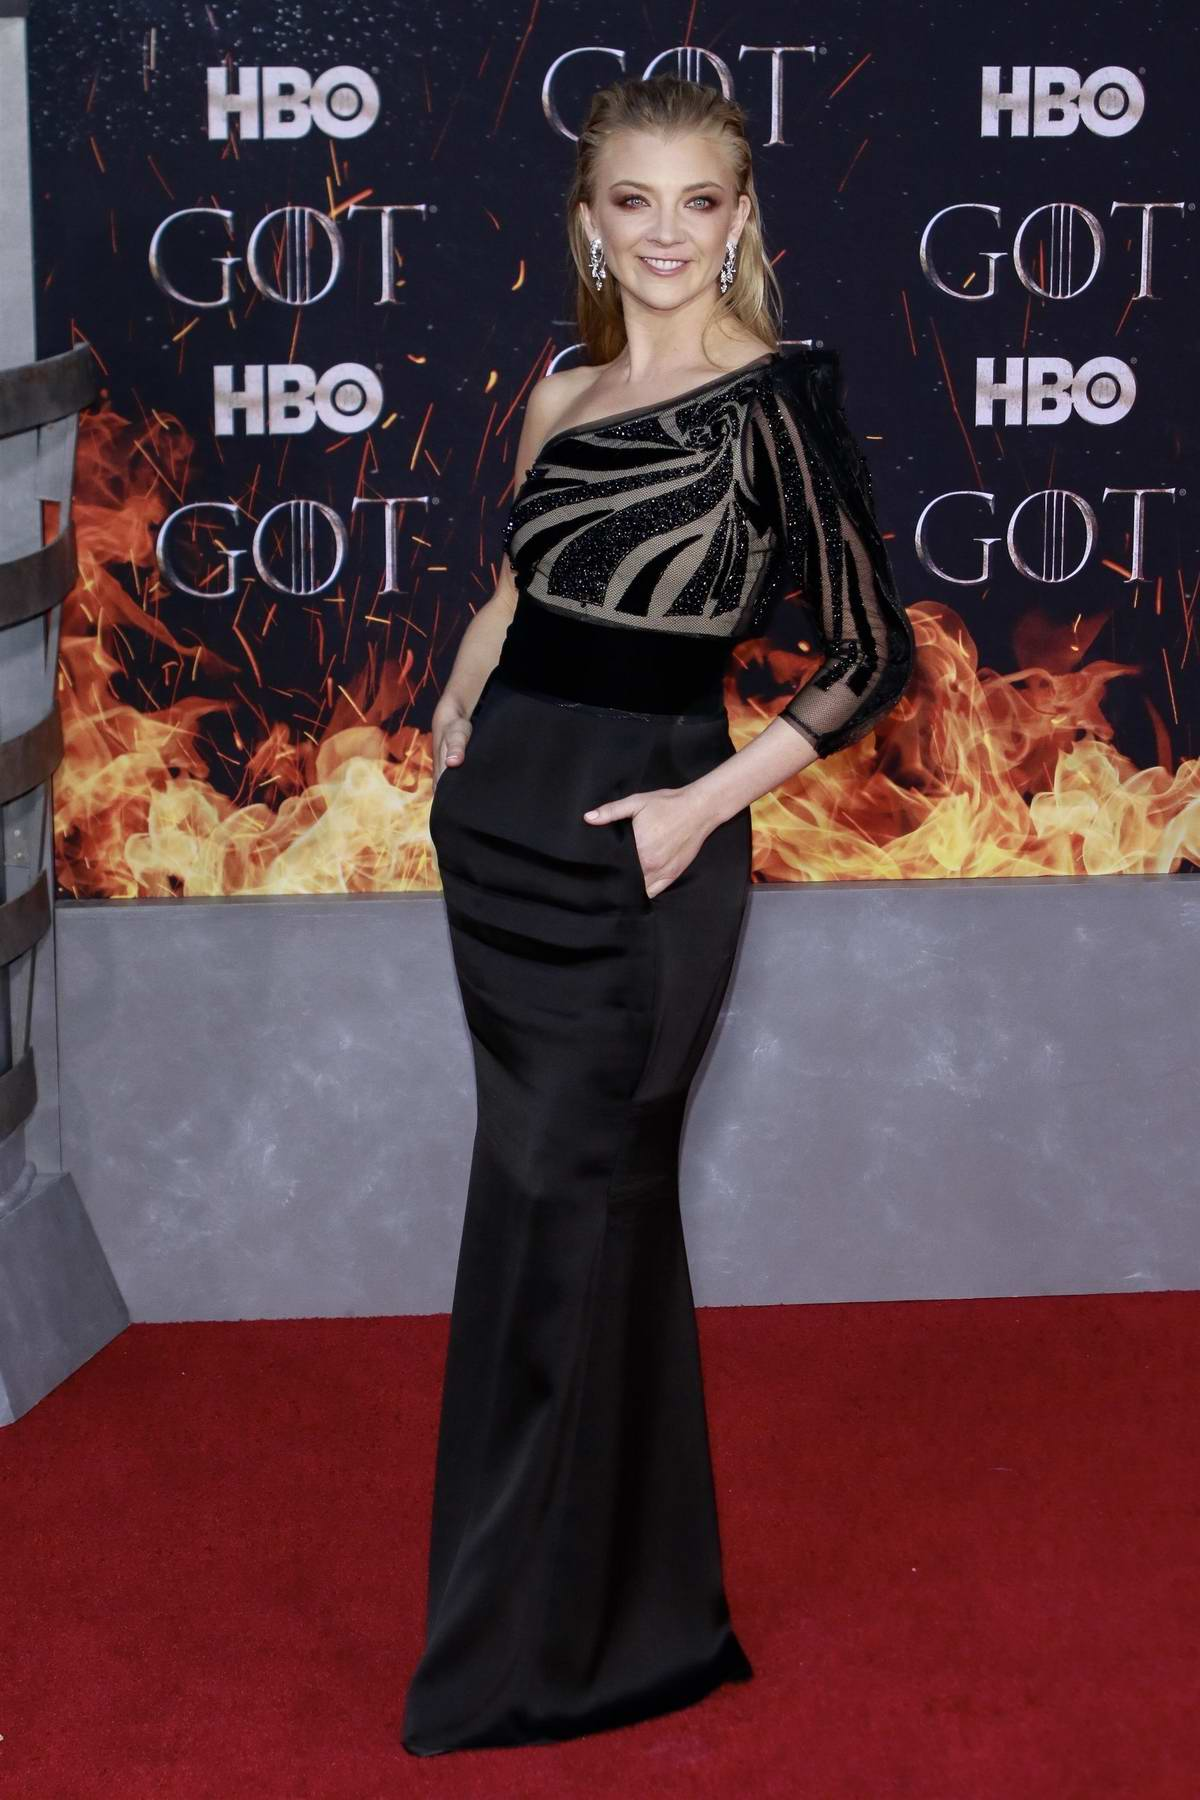 Natalie Dormer attends the Season 8 premiere of 'Game of Thrones' at Radio City Music Hall in New York City